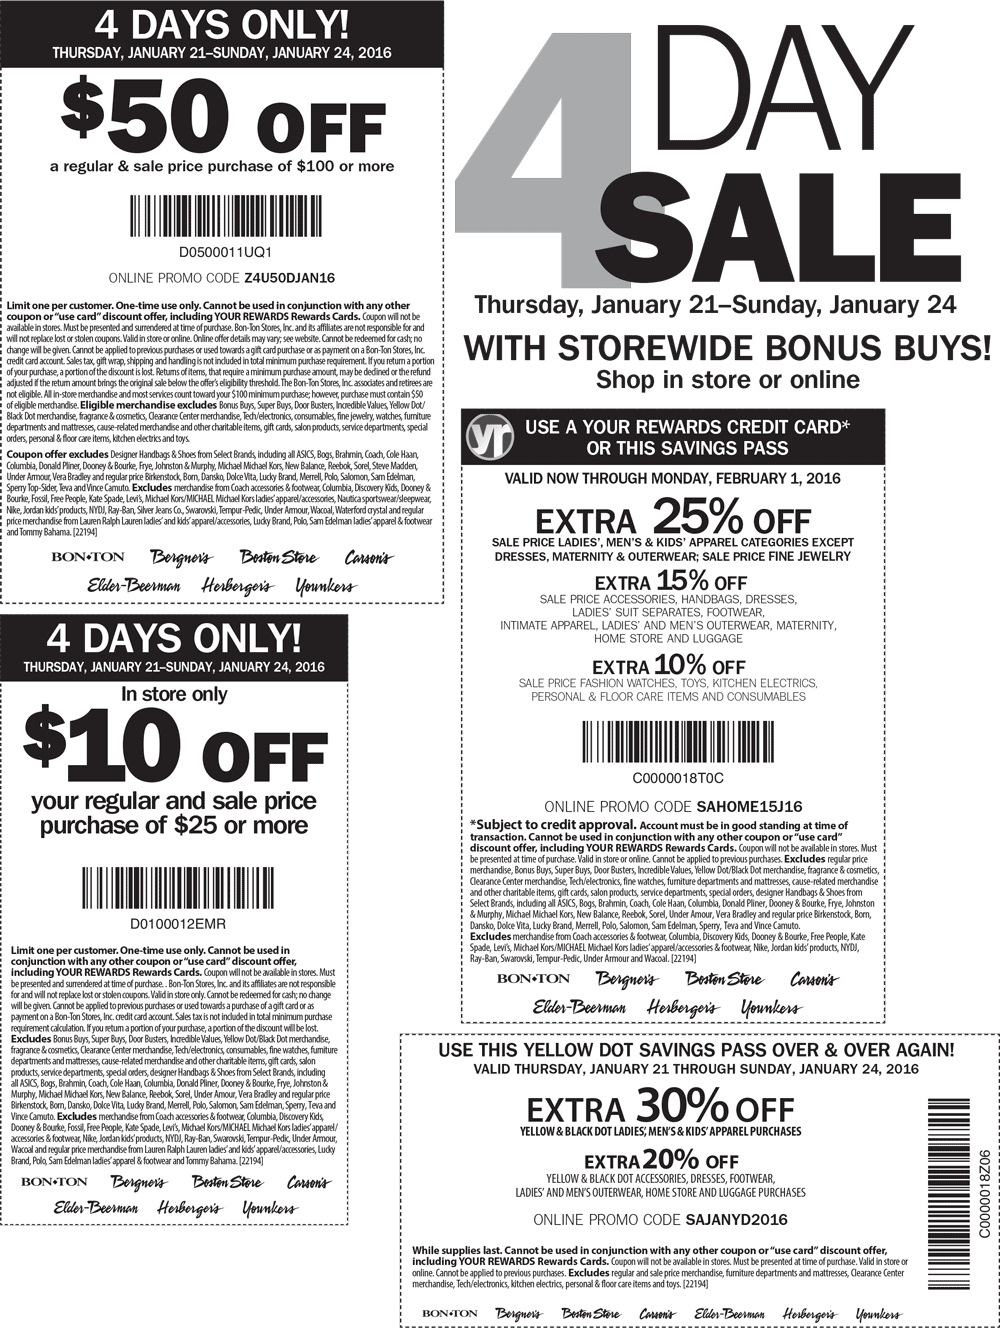 Carsons Coupon September 2018 $50 off $100 & more at Carsons, Bon Ton & sister stores, or online via promo code Z4U50DJAN16